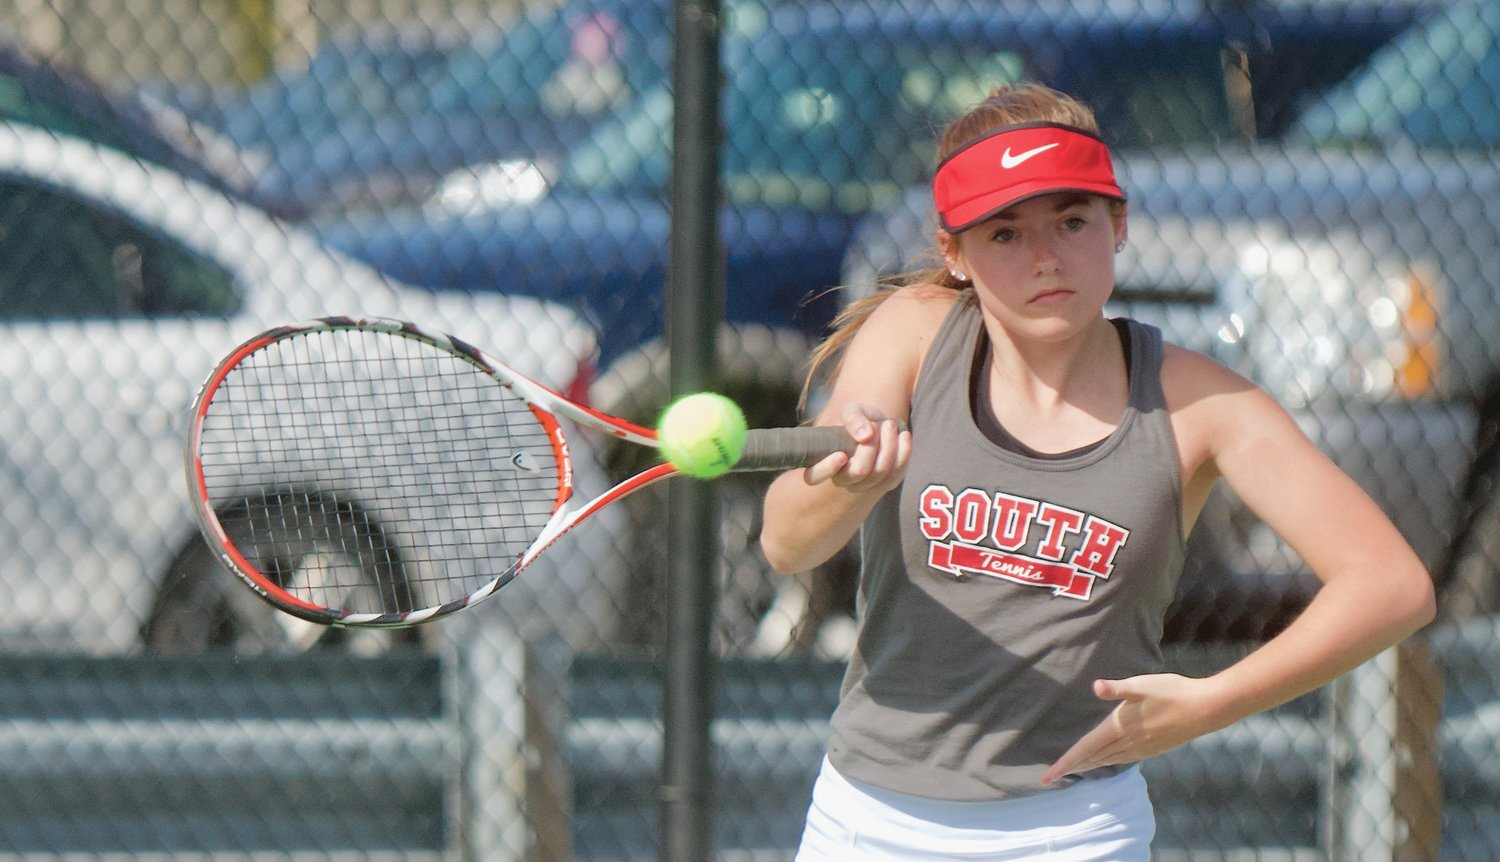 Southmont's Mallory Murphy returns a ball against North Montgomery in a match back in 2019.